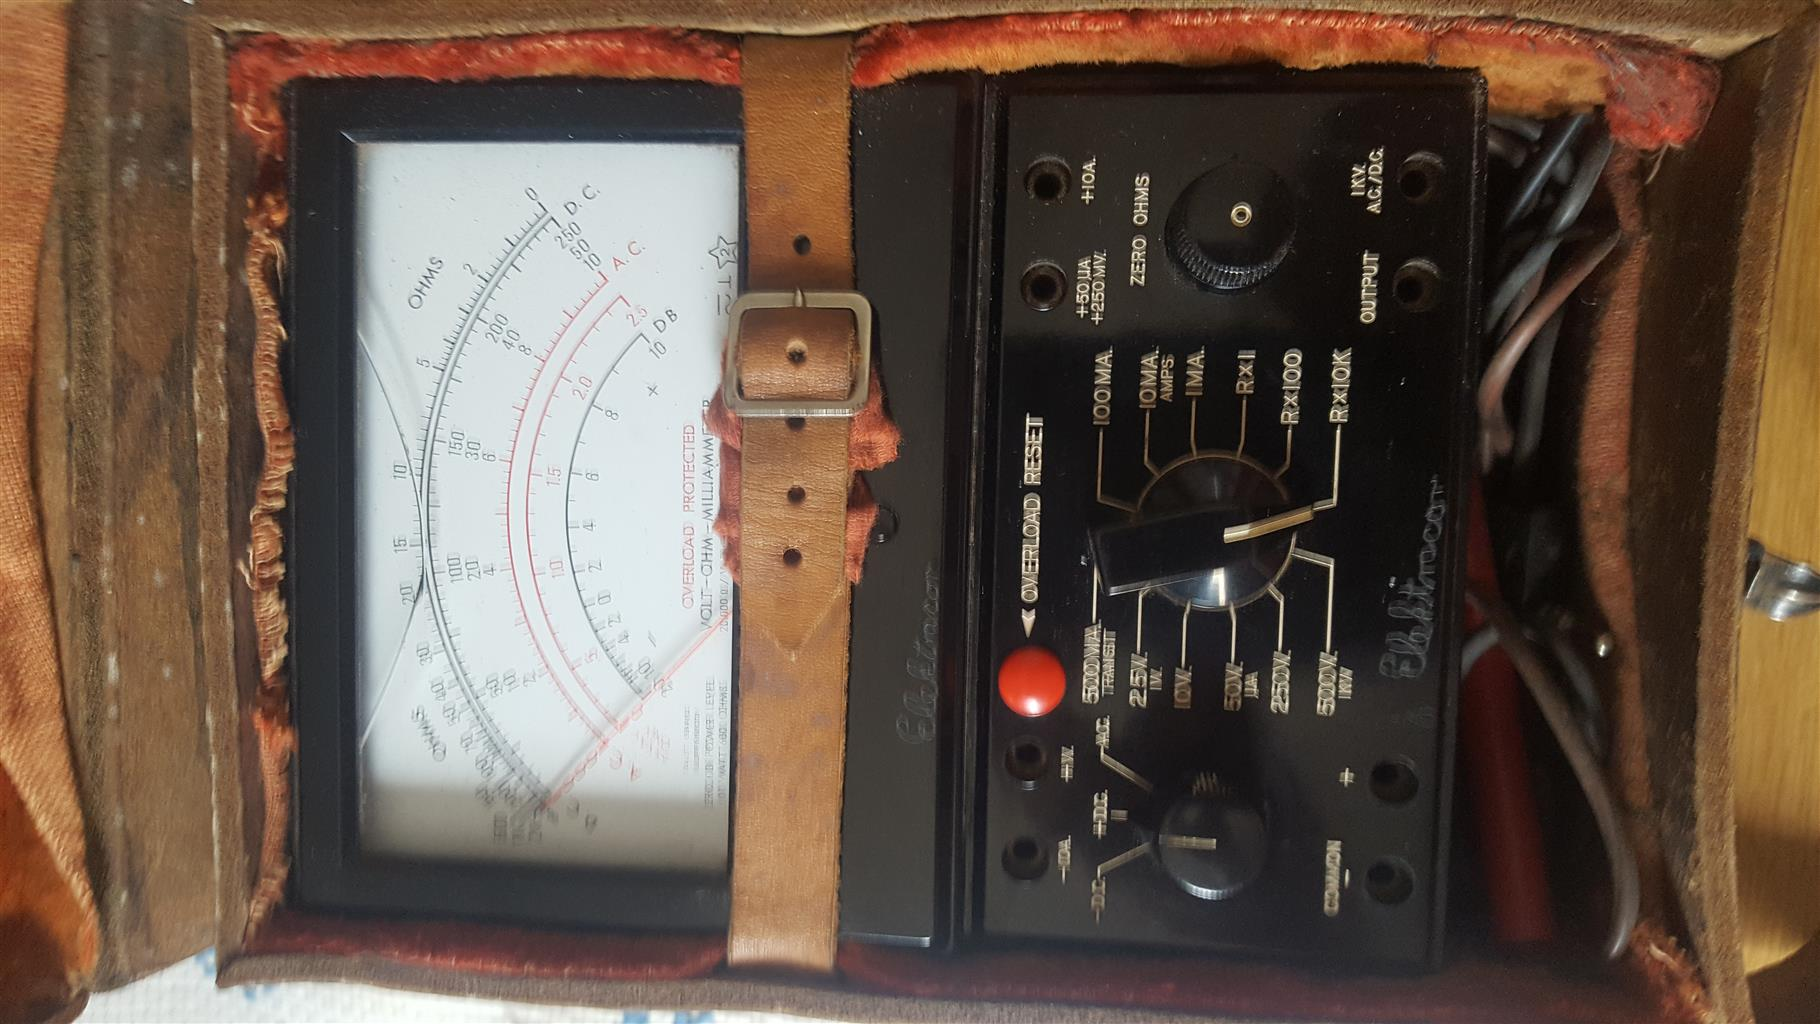 Unique vintage analog multimeter